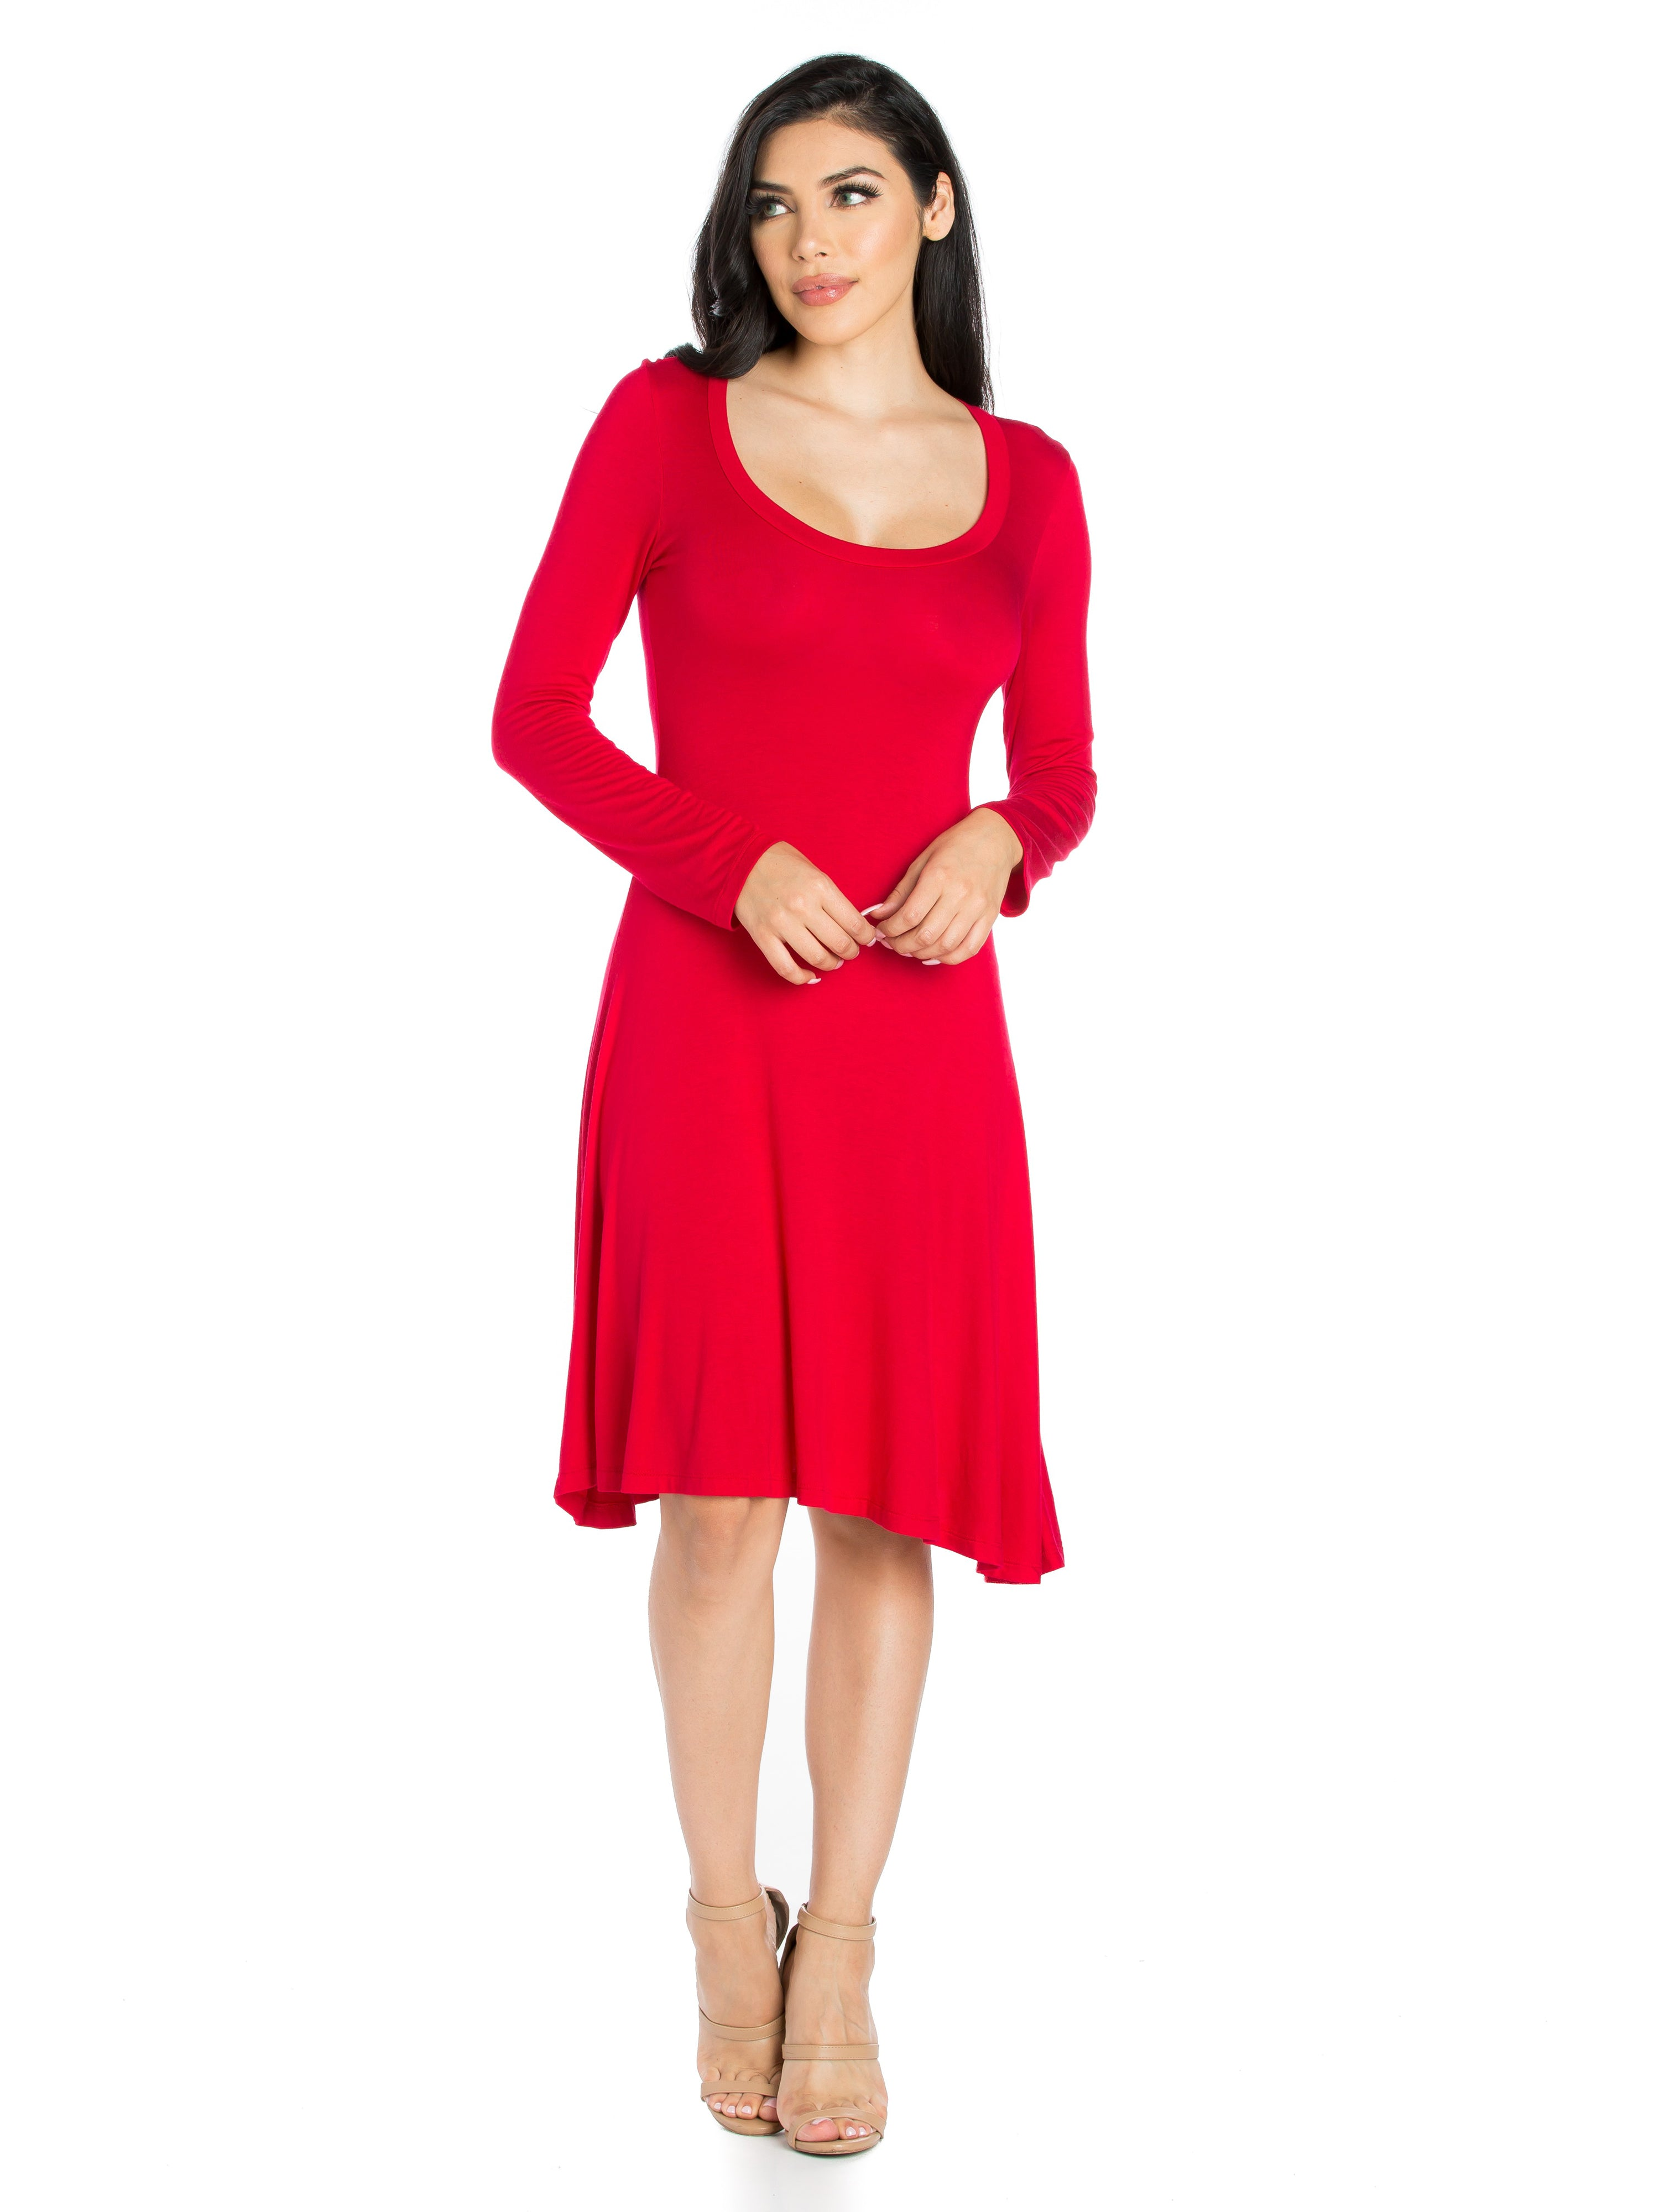 24seven Comfort Apparel Classic Long Sleeve Flared Mini Dress-Dresses-24Seven Comfort Apparel-RED-S-24/7 Comfort Apparel